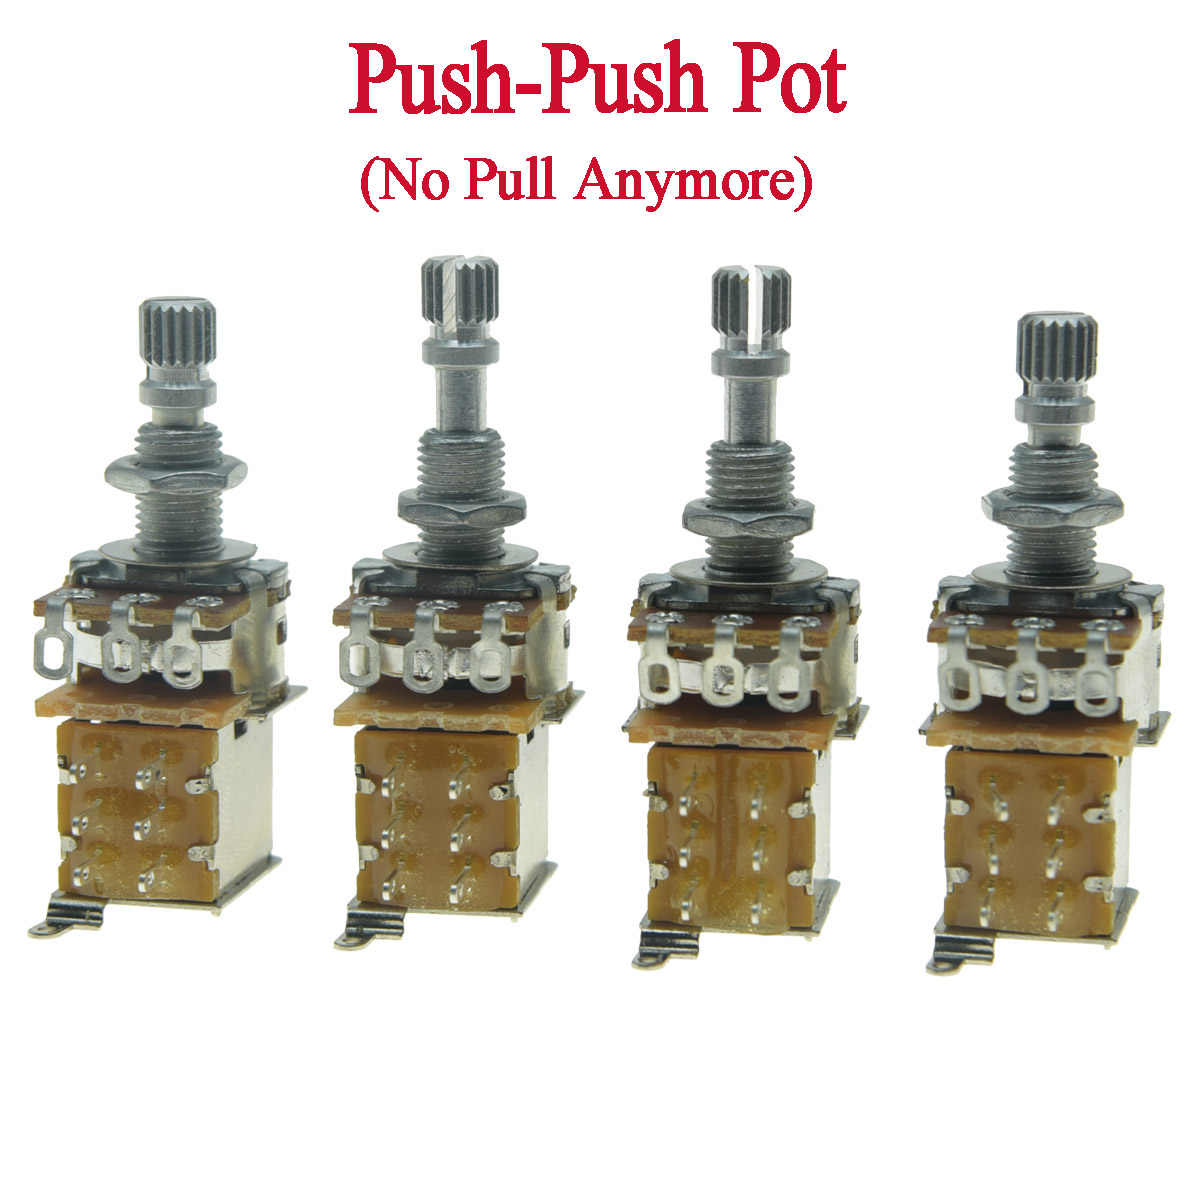 KAISH guitare basse Push Pot (sans tirer plus) Audio/linéaire cône guitare potentiomètre Pots A250K/A500K/B250K/B500K